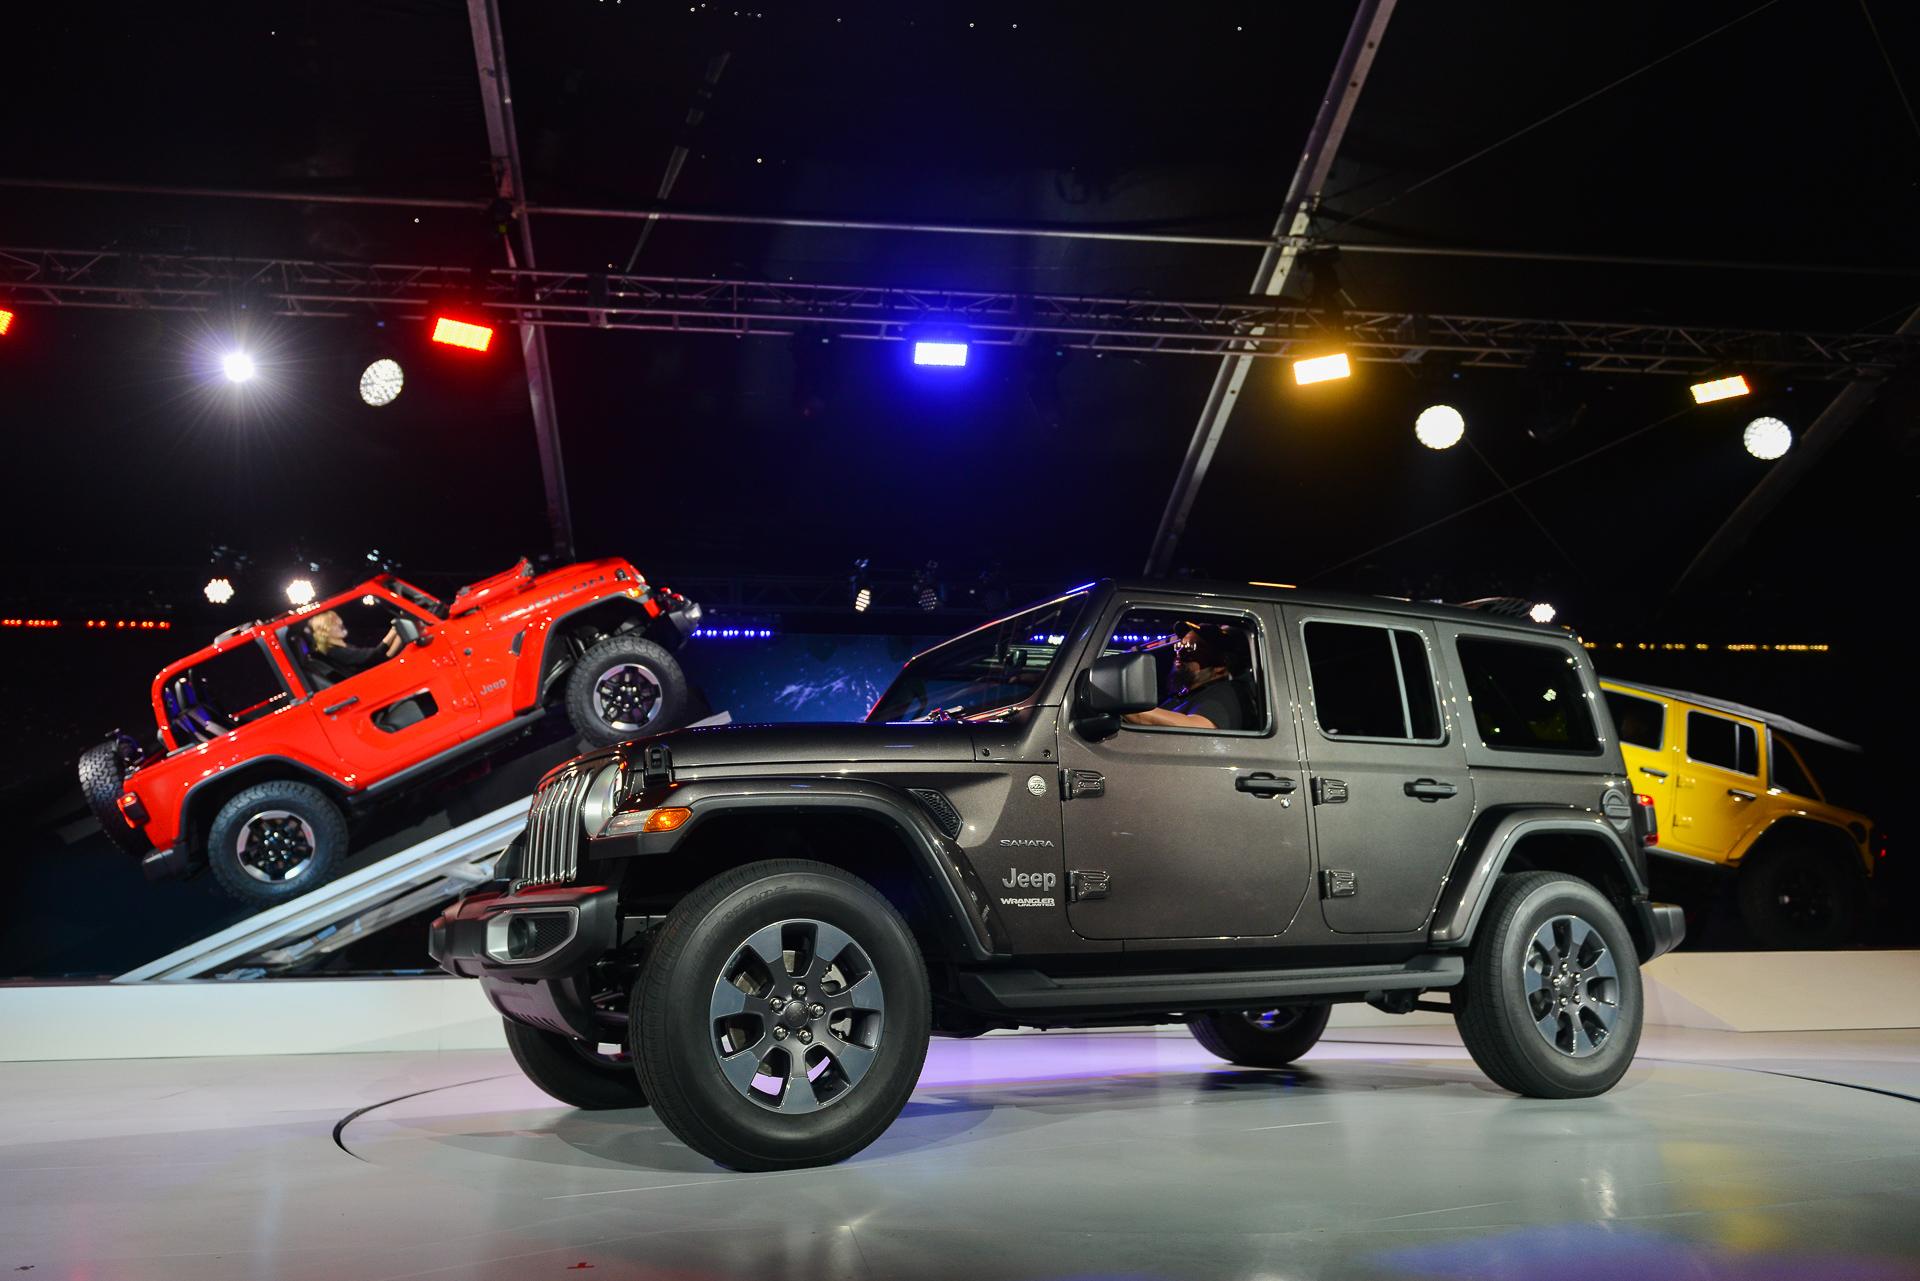 Shocking: 2020 Jeep Wrangler plug-in hybrid electric coming